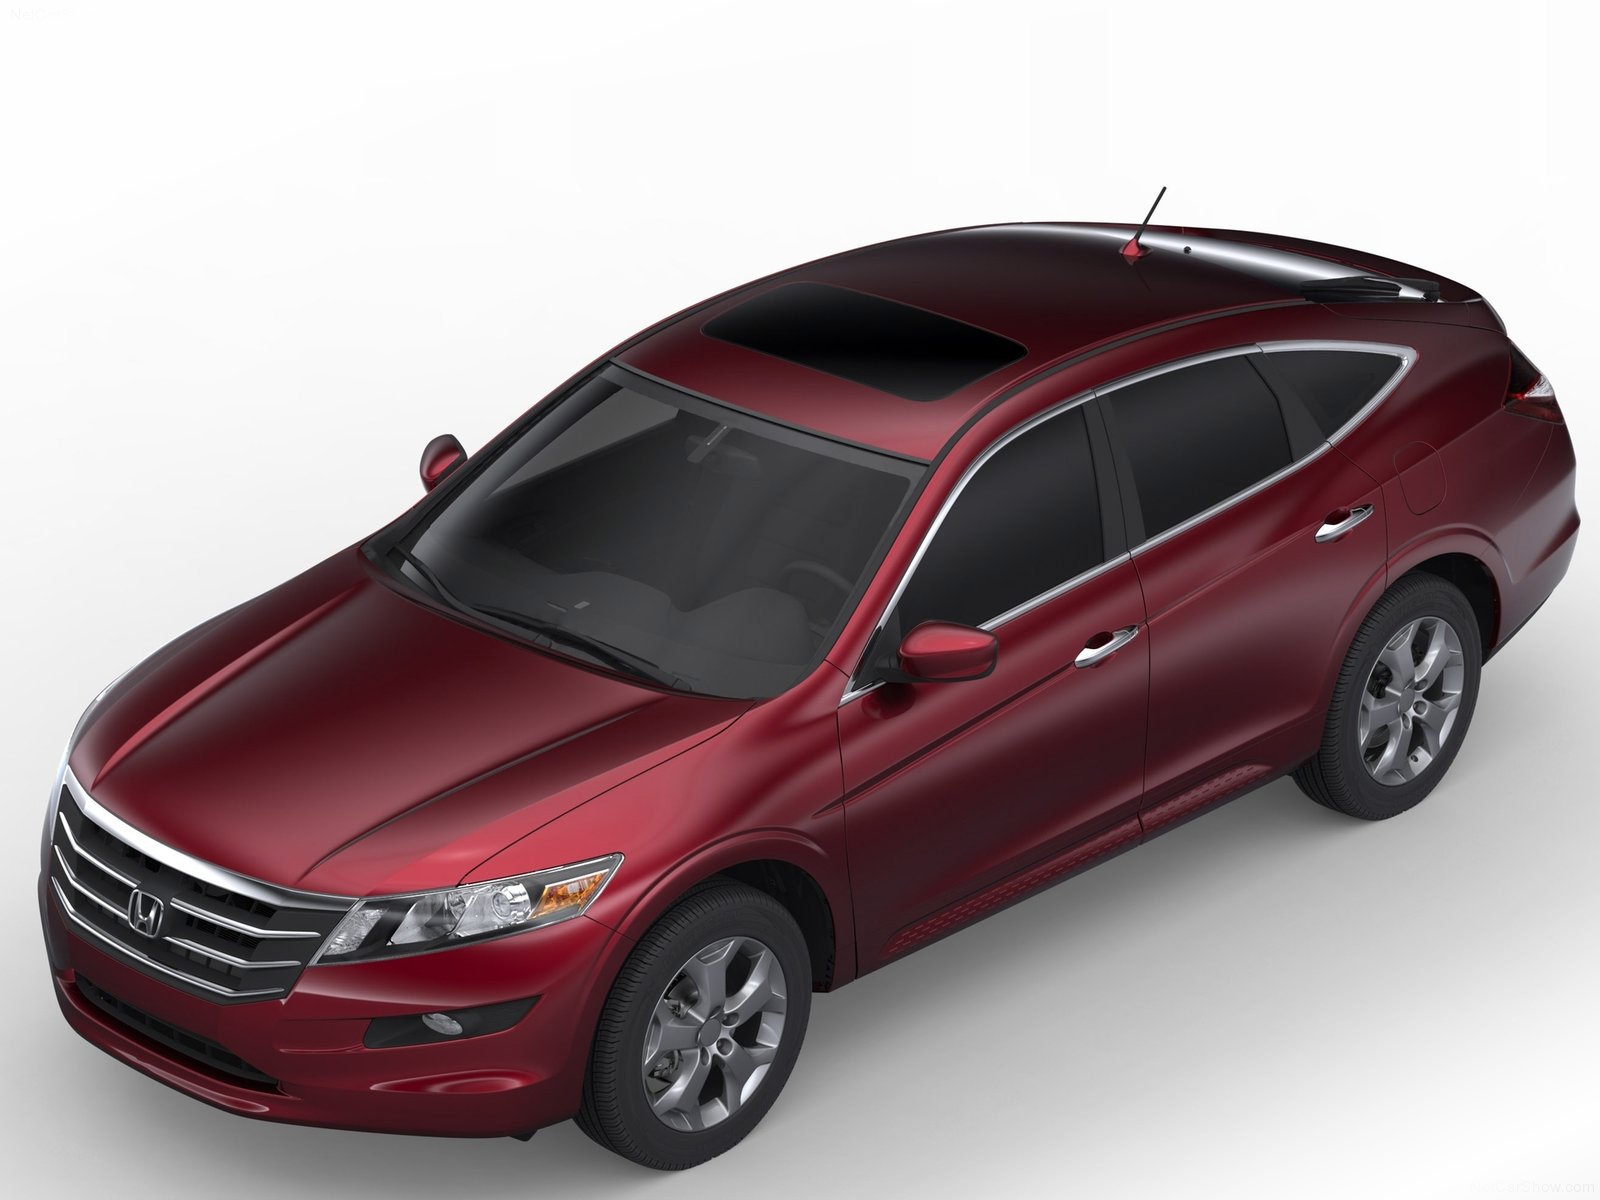 2012 Honda Crosstour Japanese Car Photos